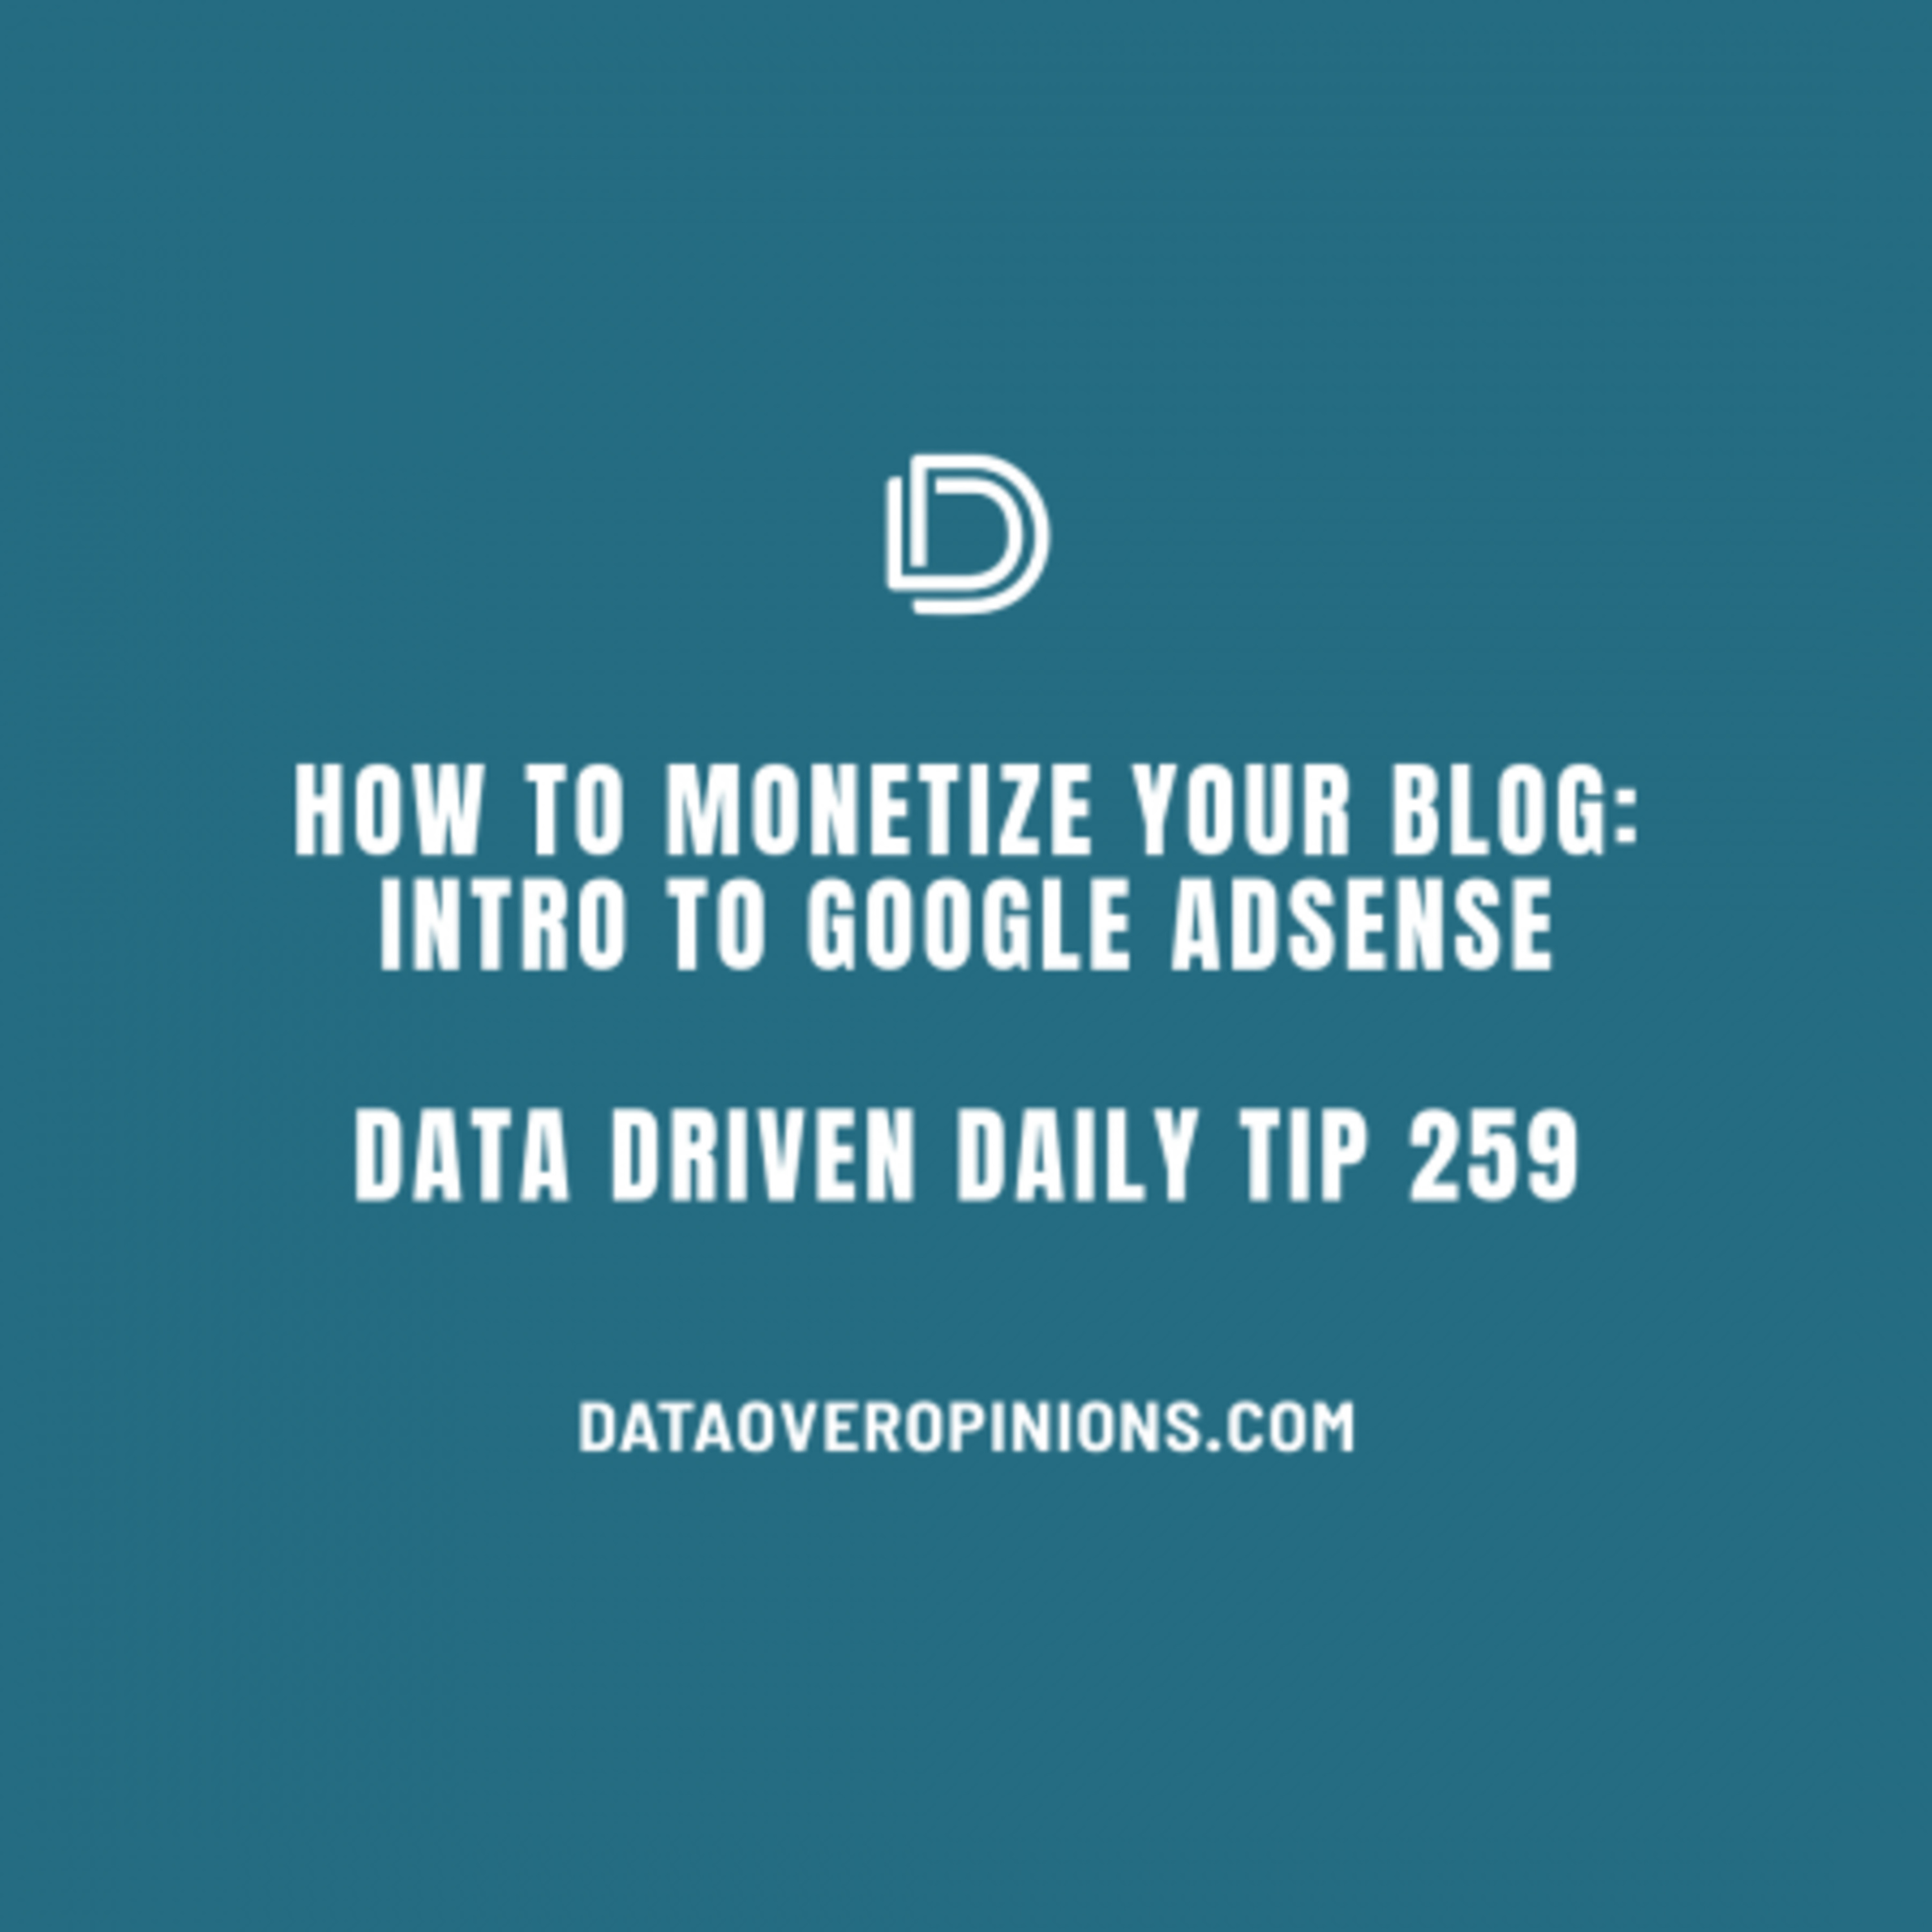 Ep.137: How to Monetize Your Blog: Intro To Google AdSense: Data Driven Daily Tip 259